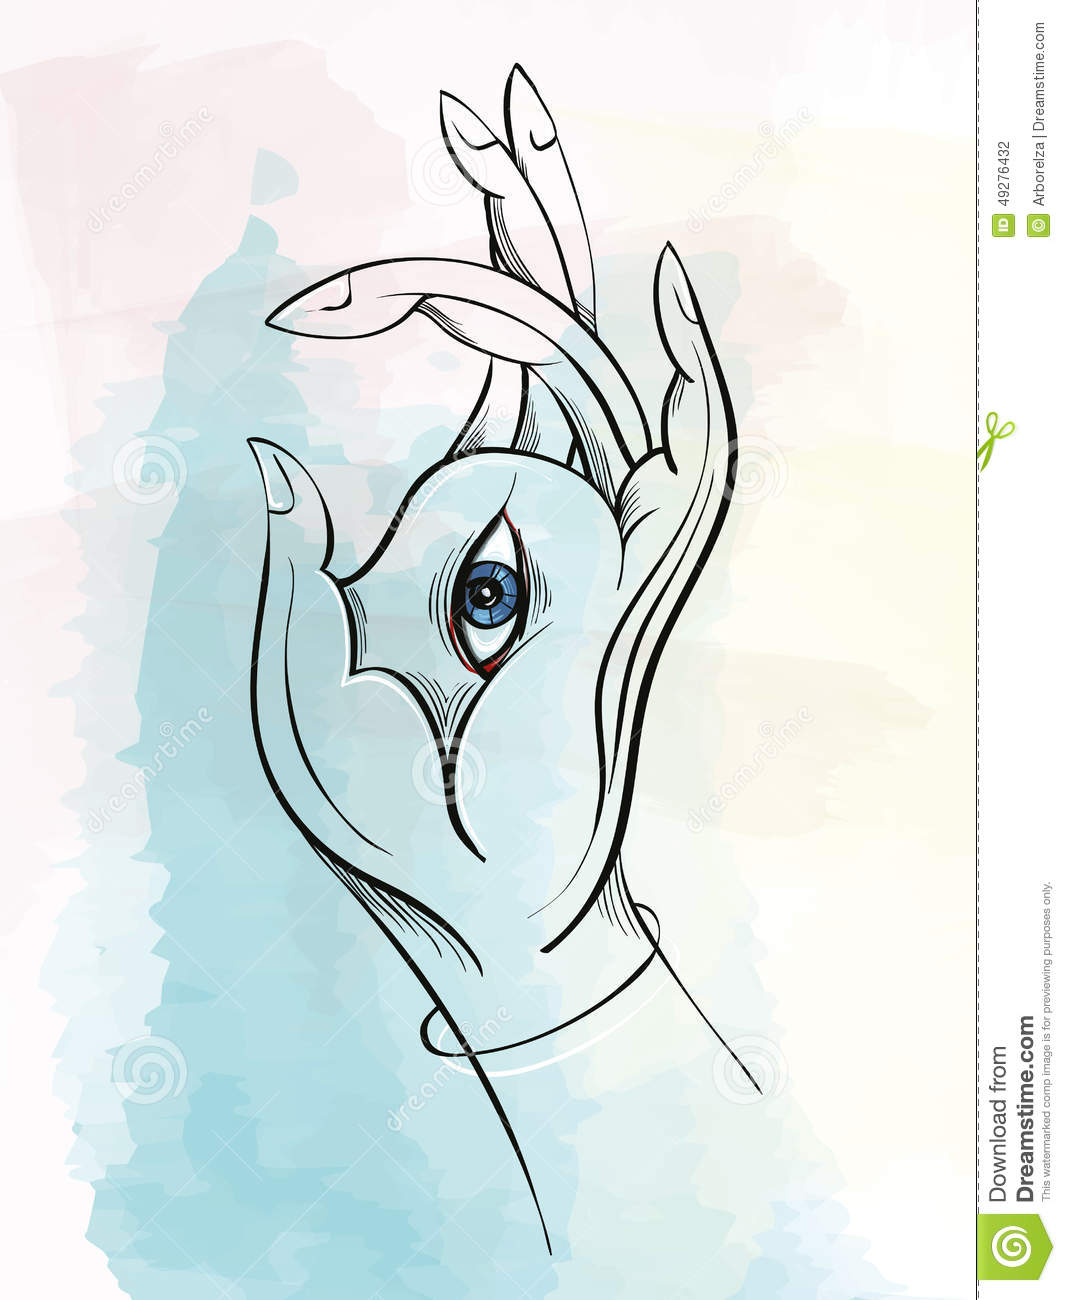 Vector Illustration Of The Buddha's Hand With Eye Stock ...